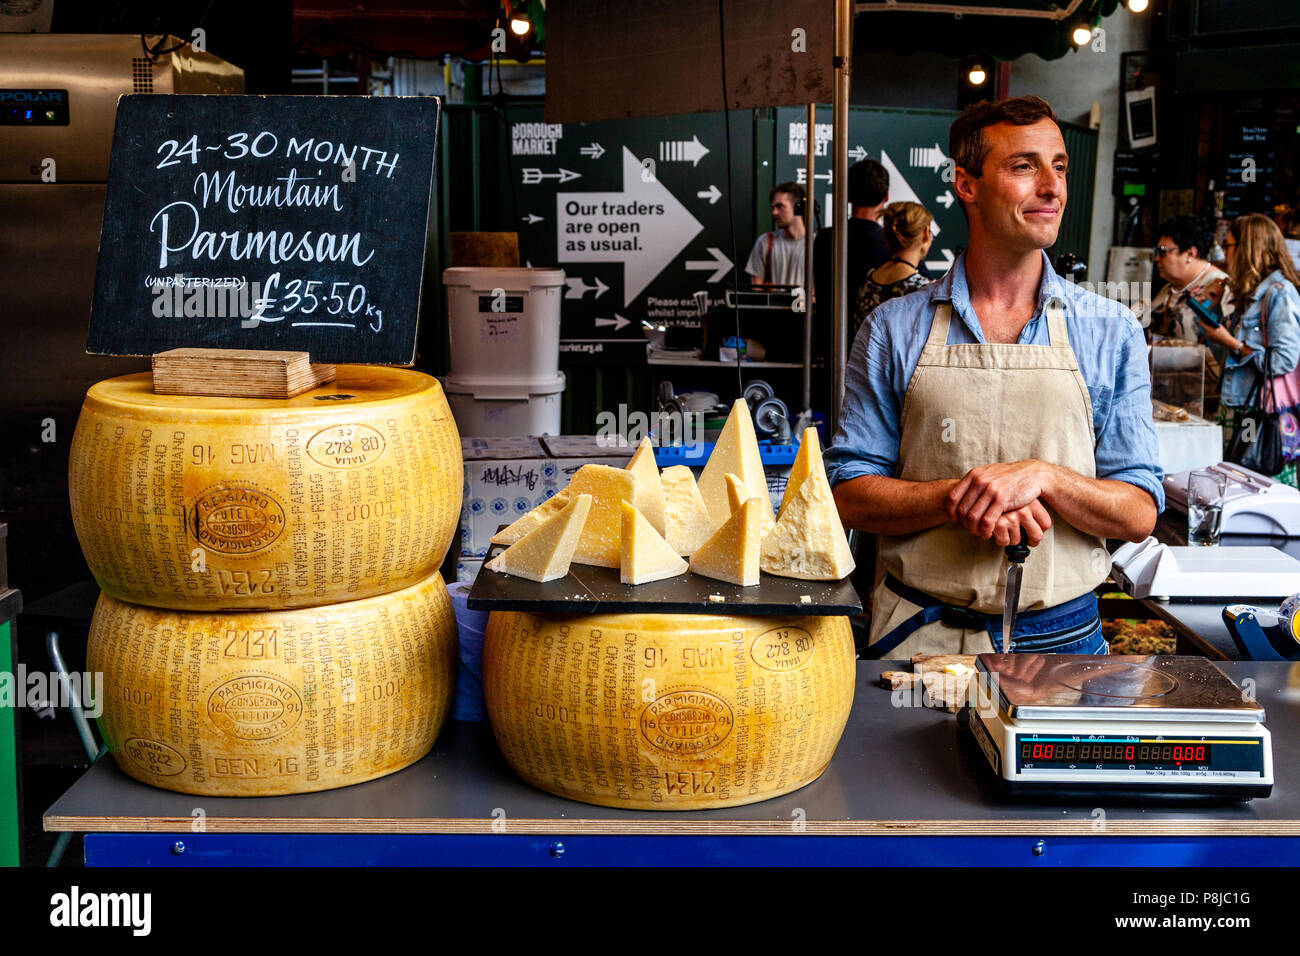 A Man Selling Cheese At A Cheese Stall In Borough Market, London, England - Stock Image